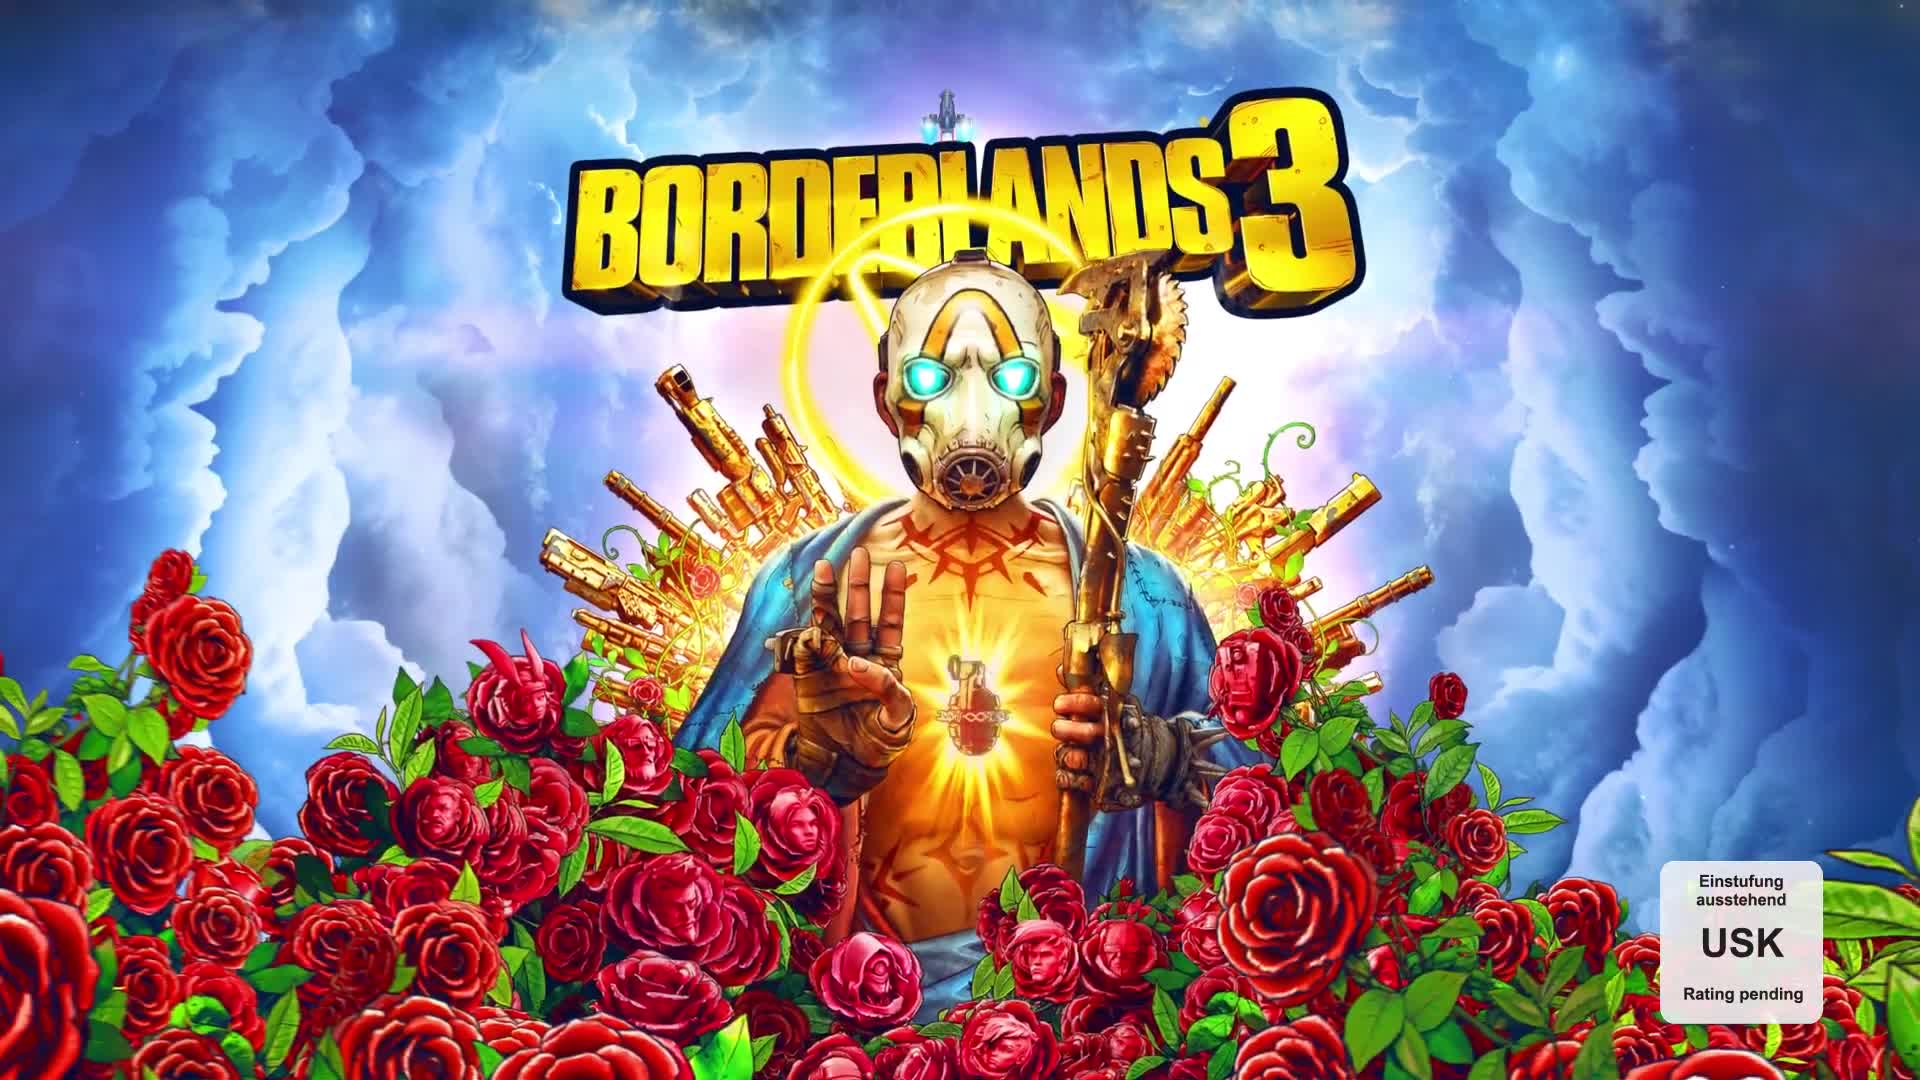 Trailer, Ego-Shooter, 2K Games, Borderlands, Borderlands 3